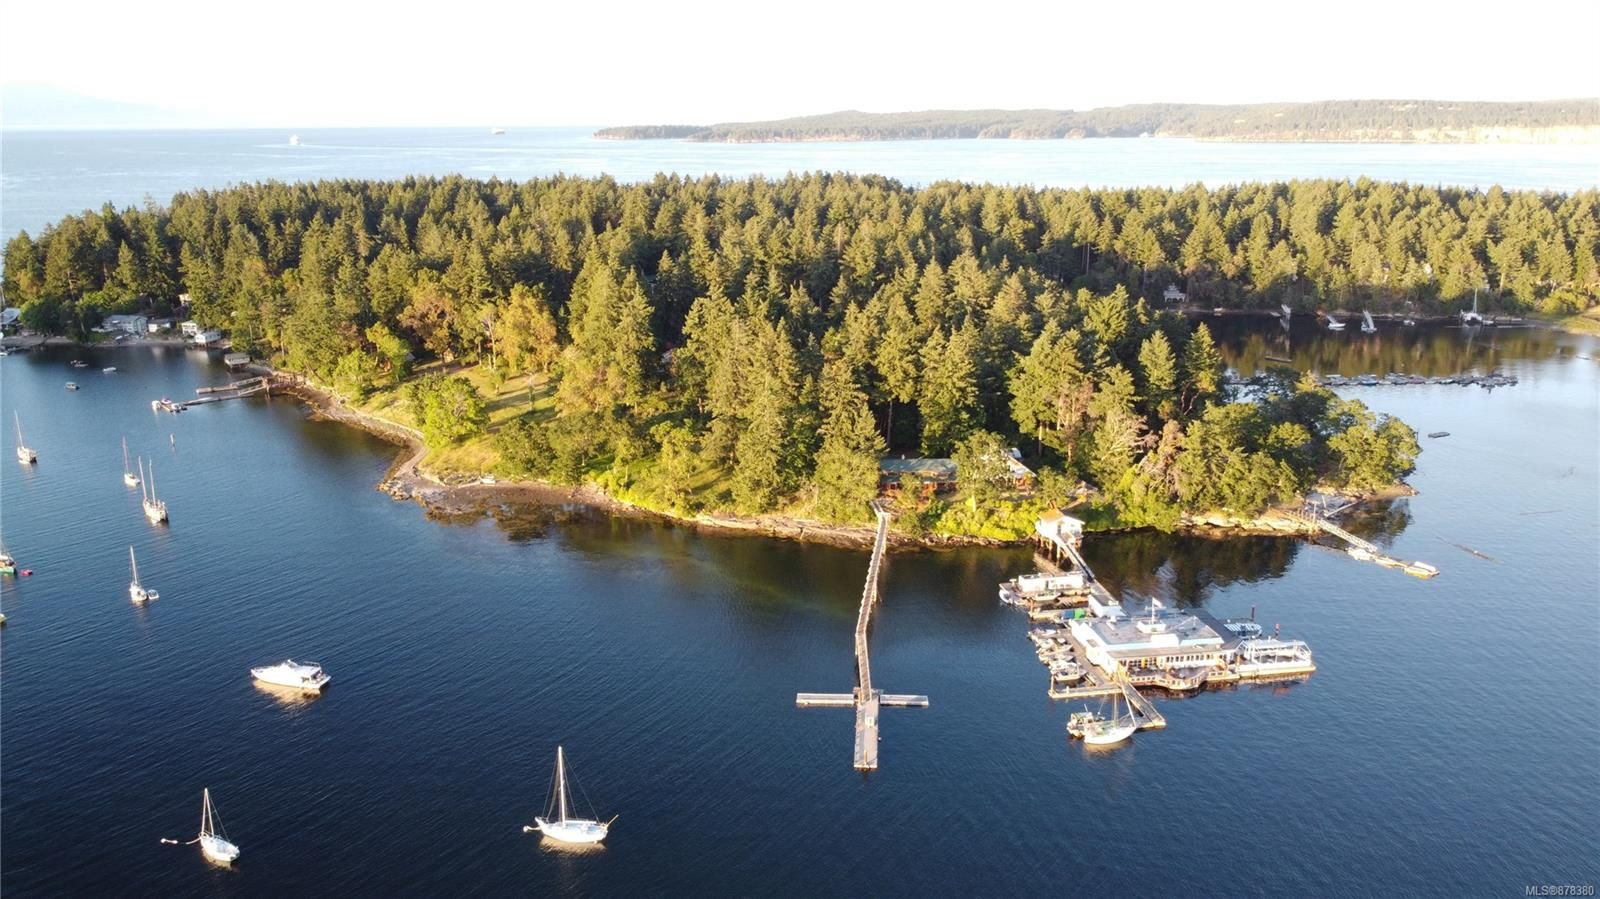 Main Photo: 10 Pirates Lane in : Isl Protection Island House for sale (Islands)  : MLS®# 878380